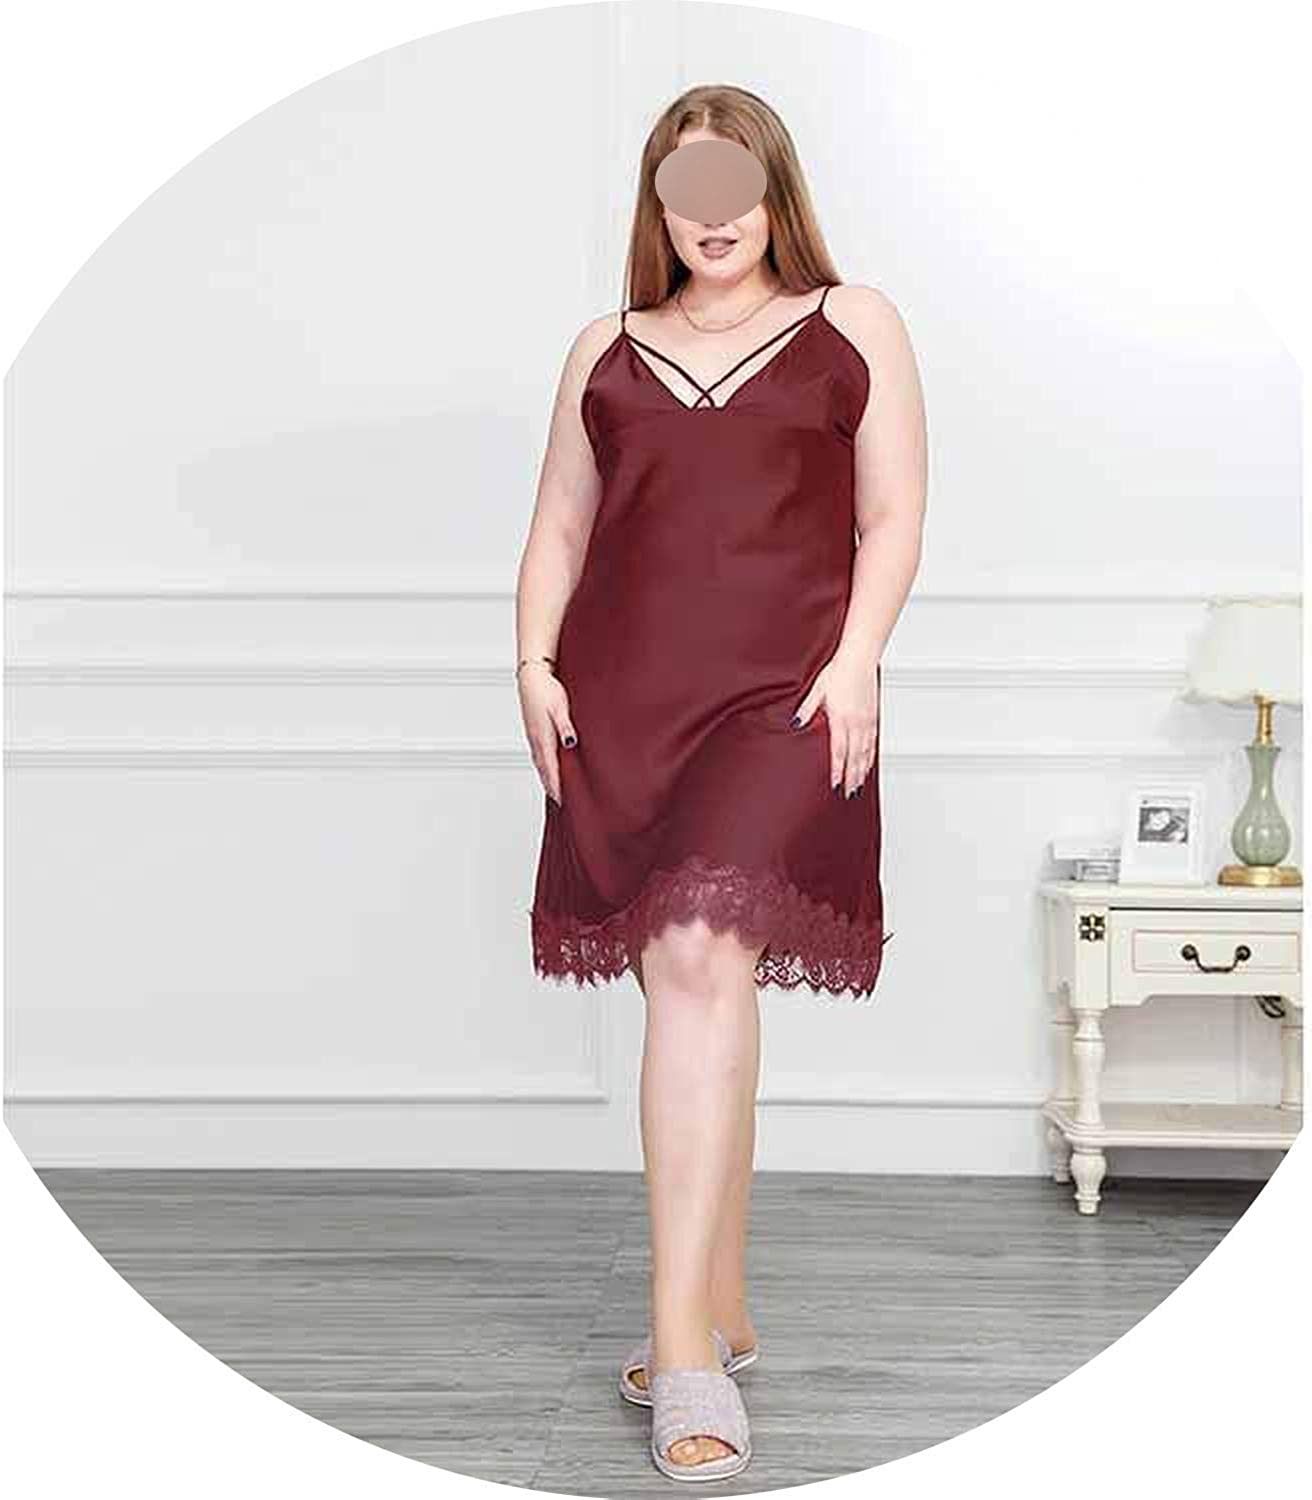 I'm good at you 2019 Sexy Lingerie Lace Sleepwear Summer Nightgown for 100KG Silk Nightwear Robe Dress Gown